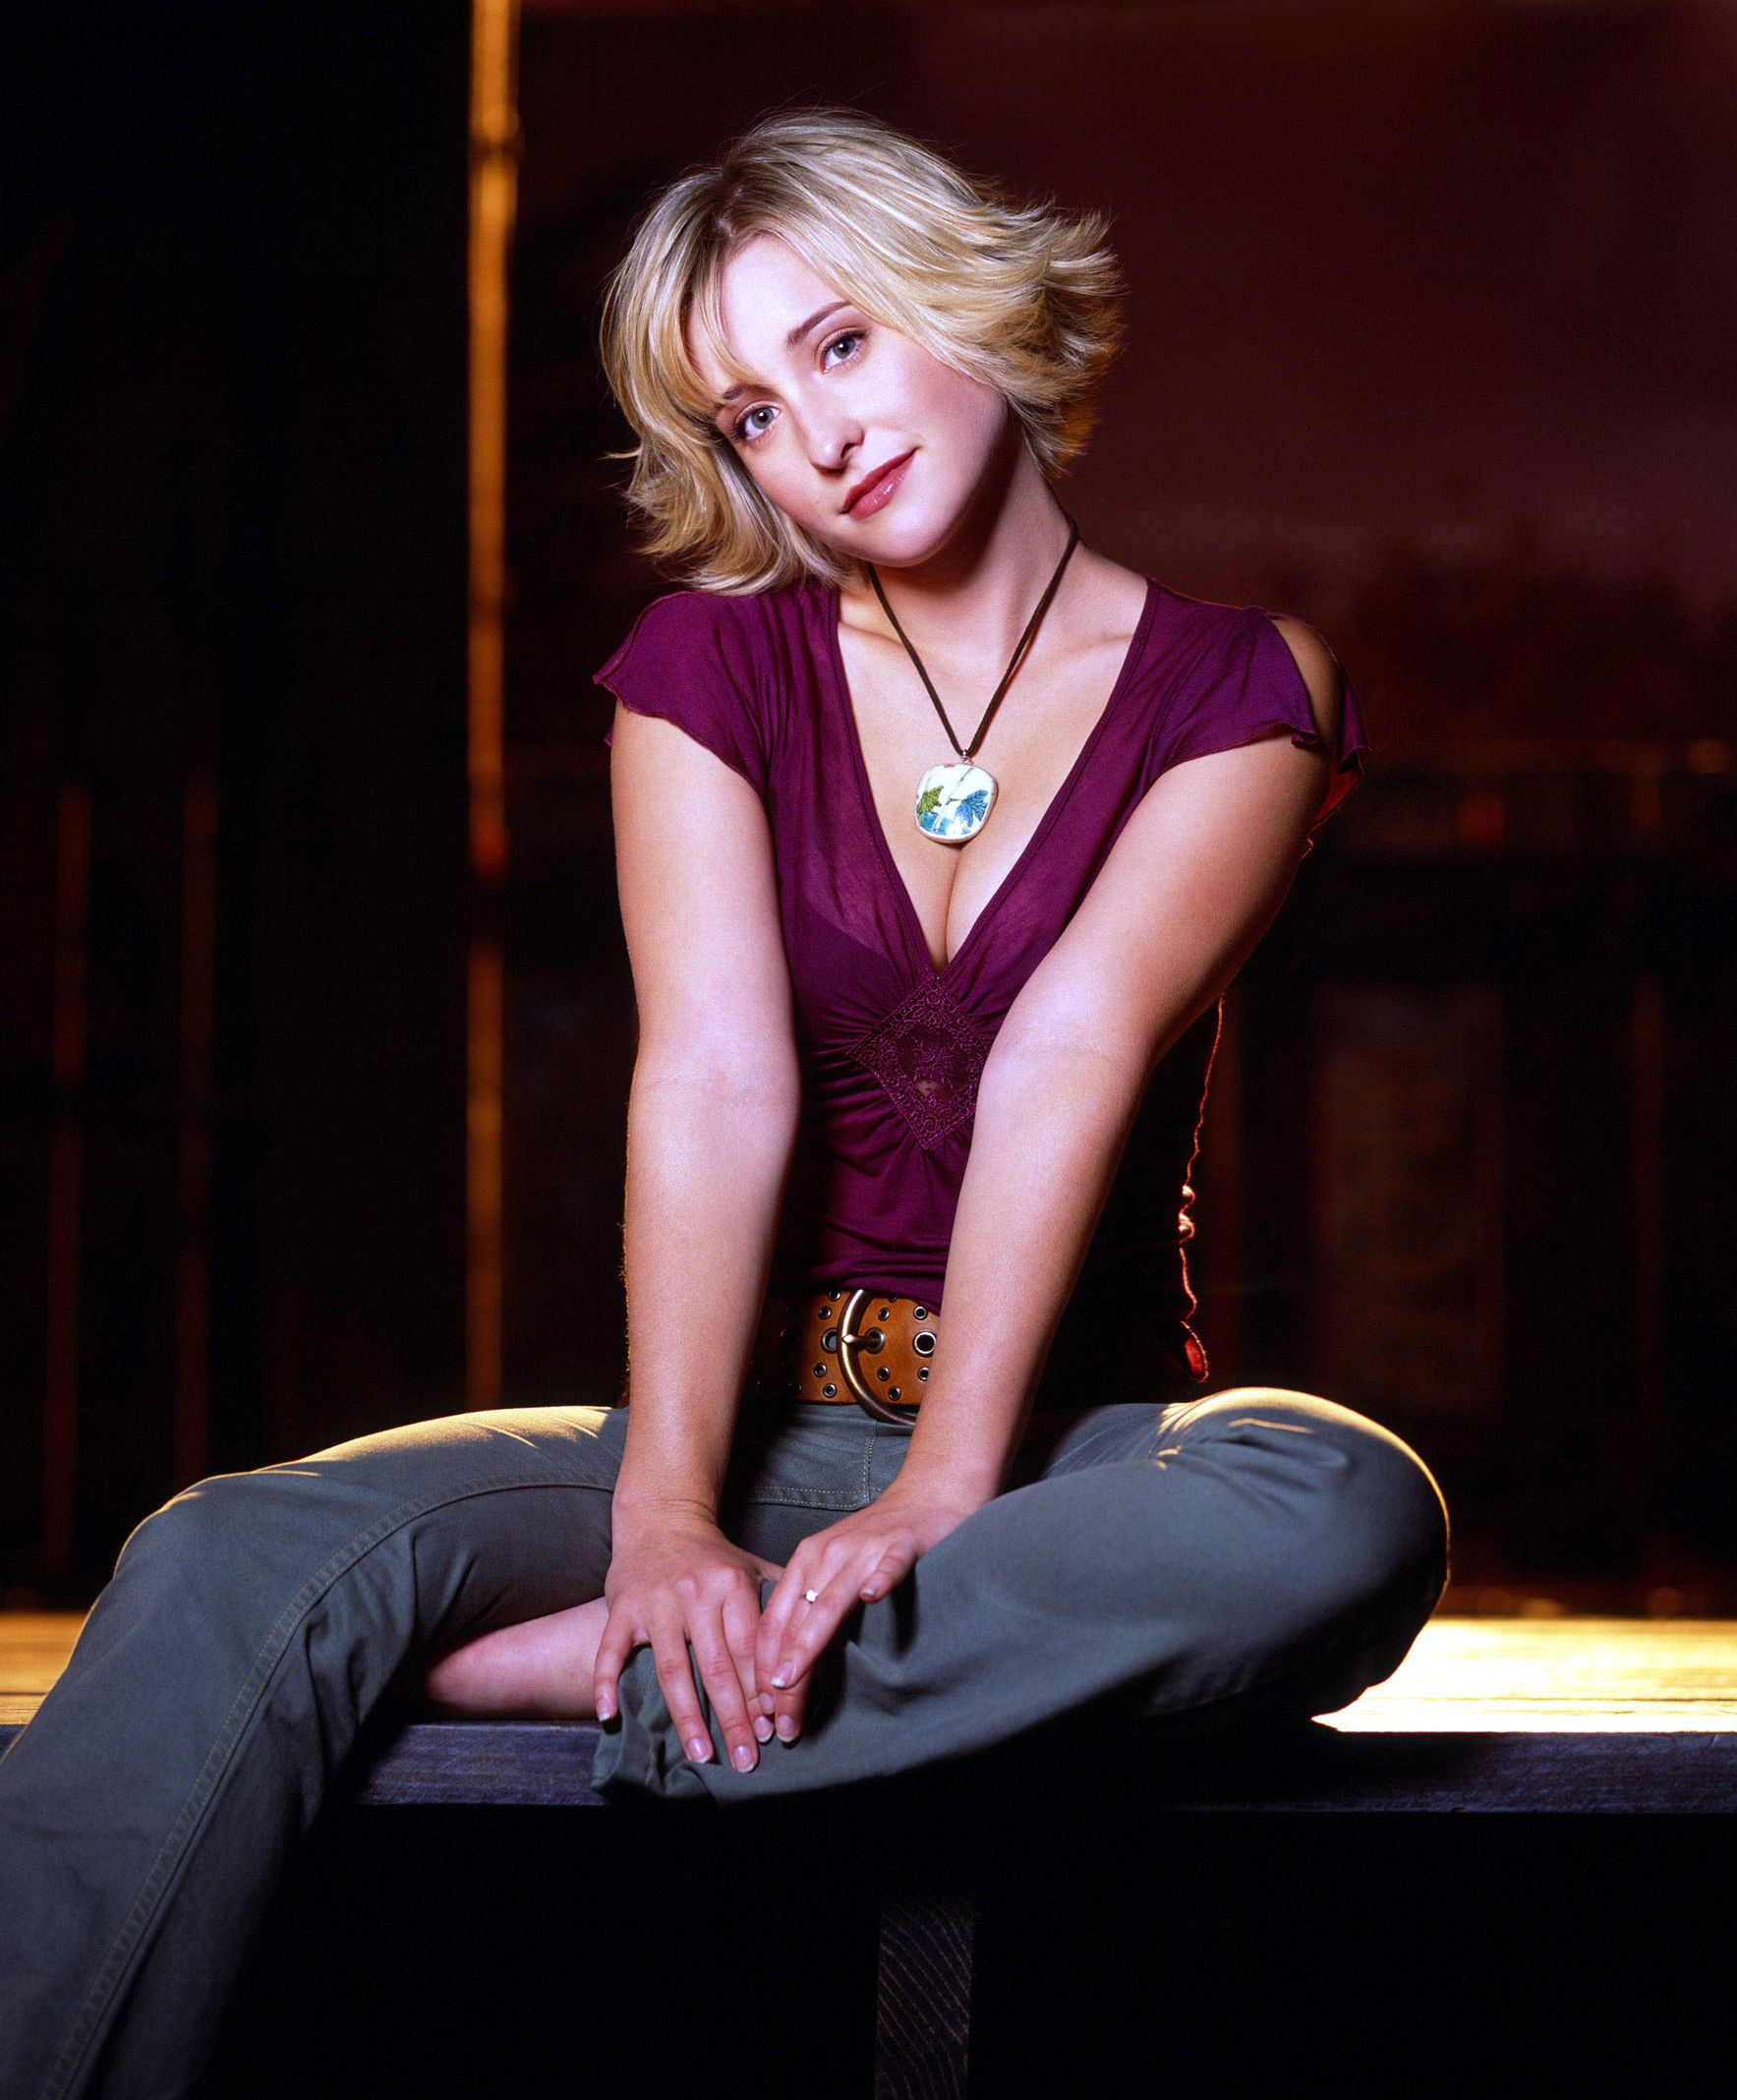 Smallville Actress Allison Mack Arrested For Role In